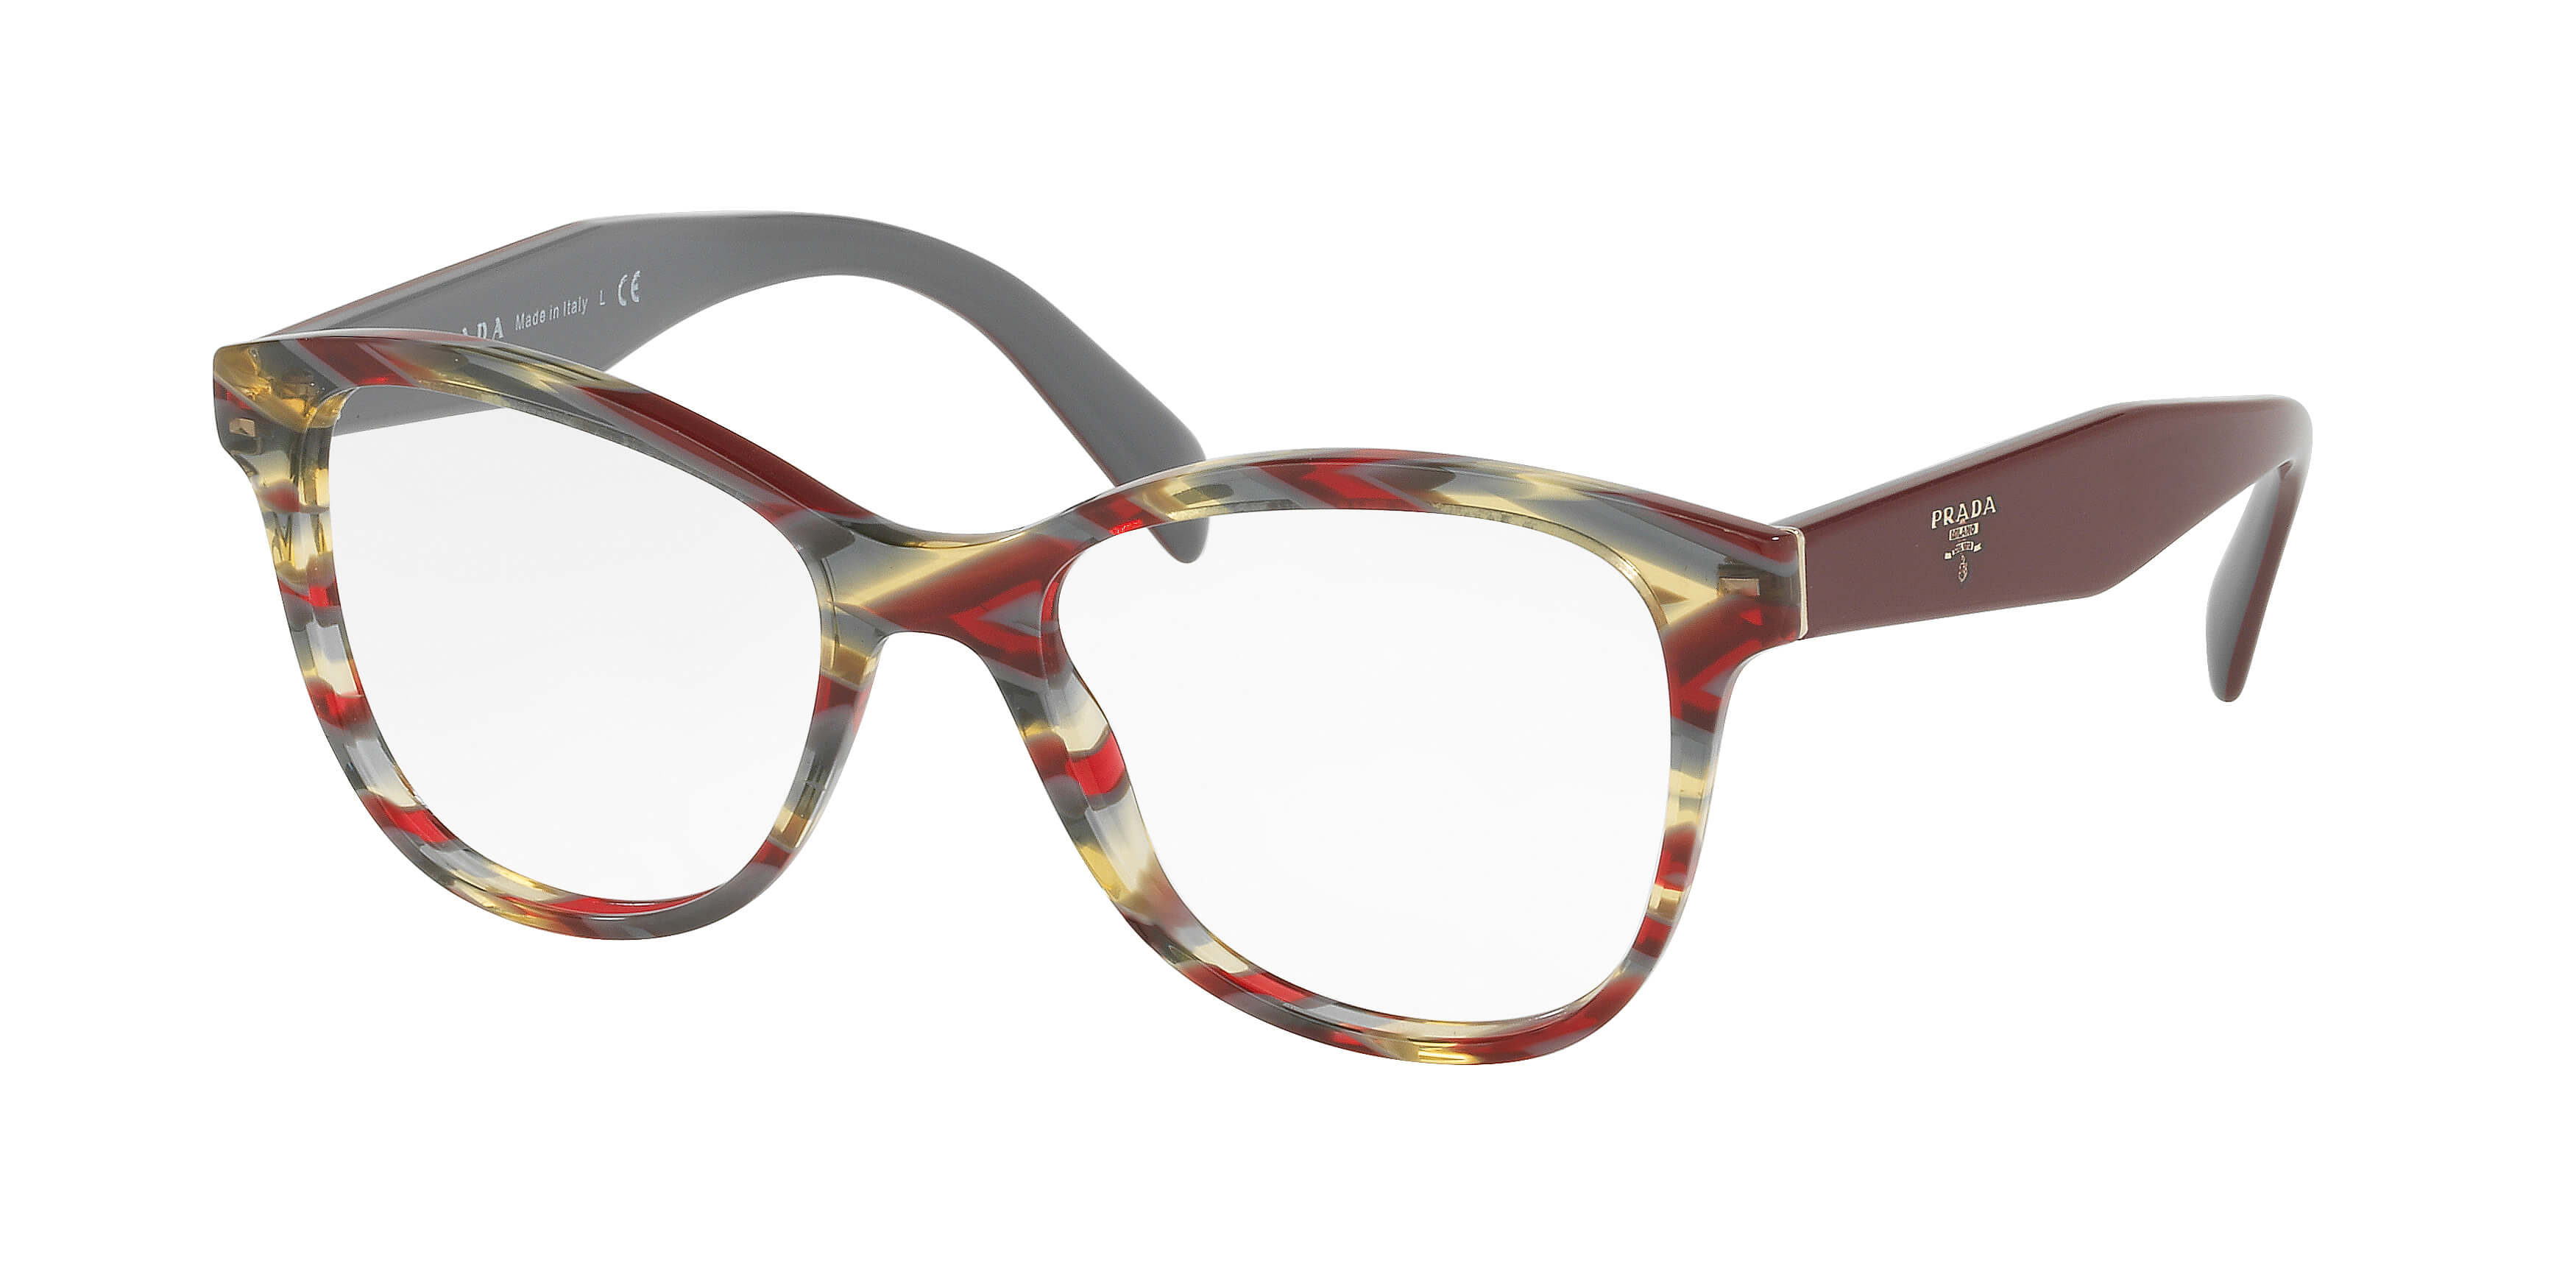 b4fa221b7e6 ... frames featuring geometric temples and the distinctive Prada logo.  Product featured in the campaign is style PR 12TV and is available in  selected stores ...